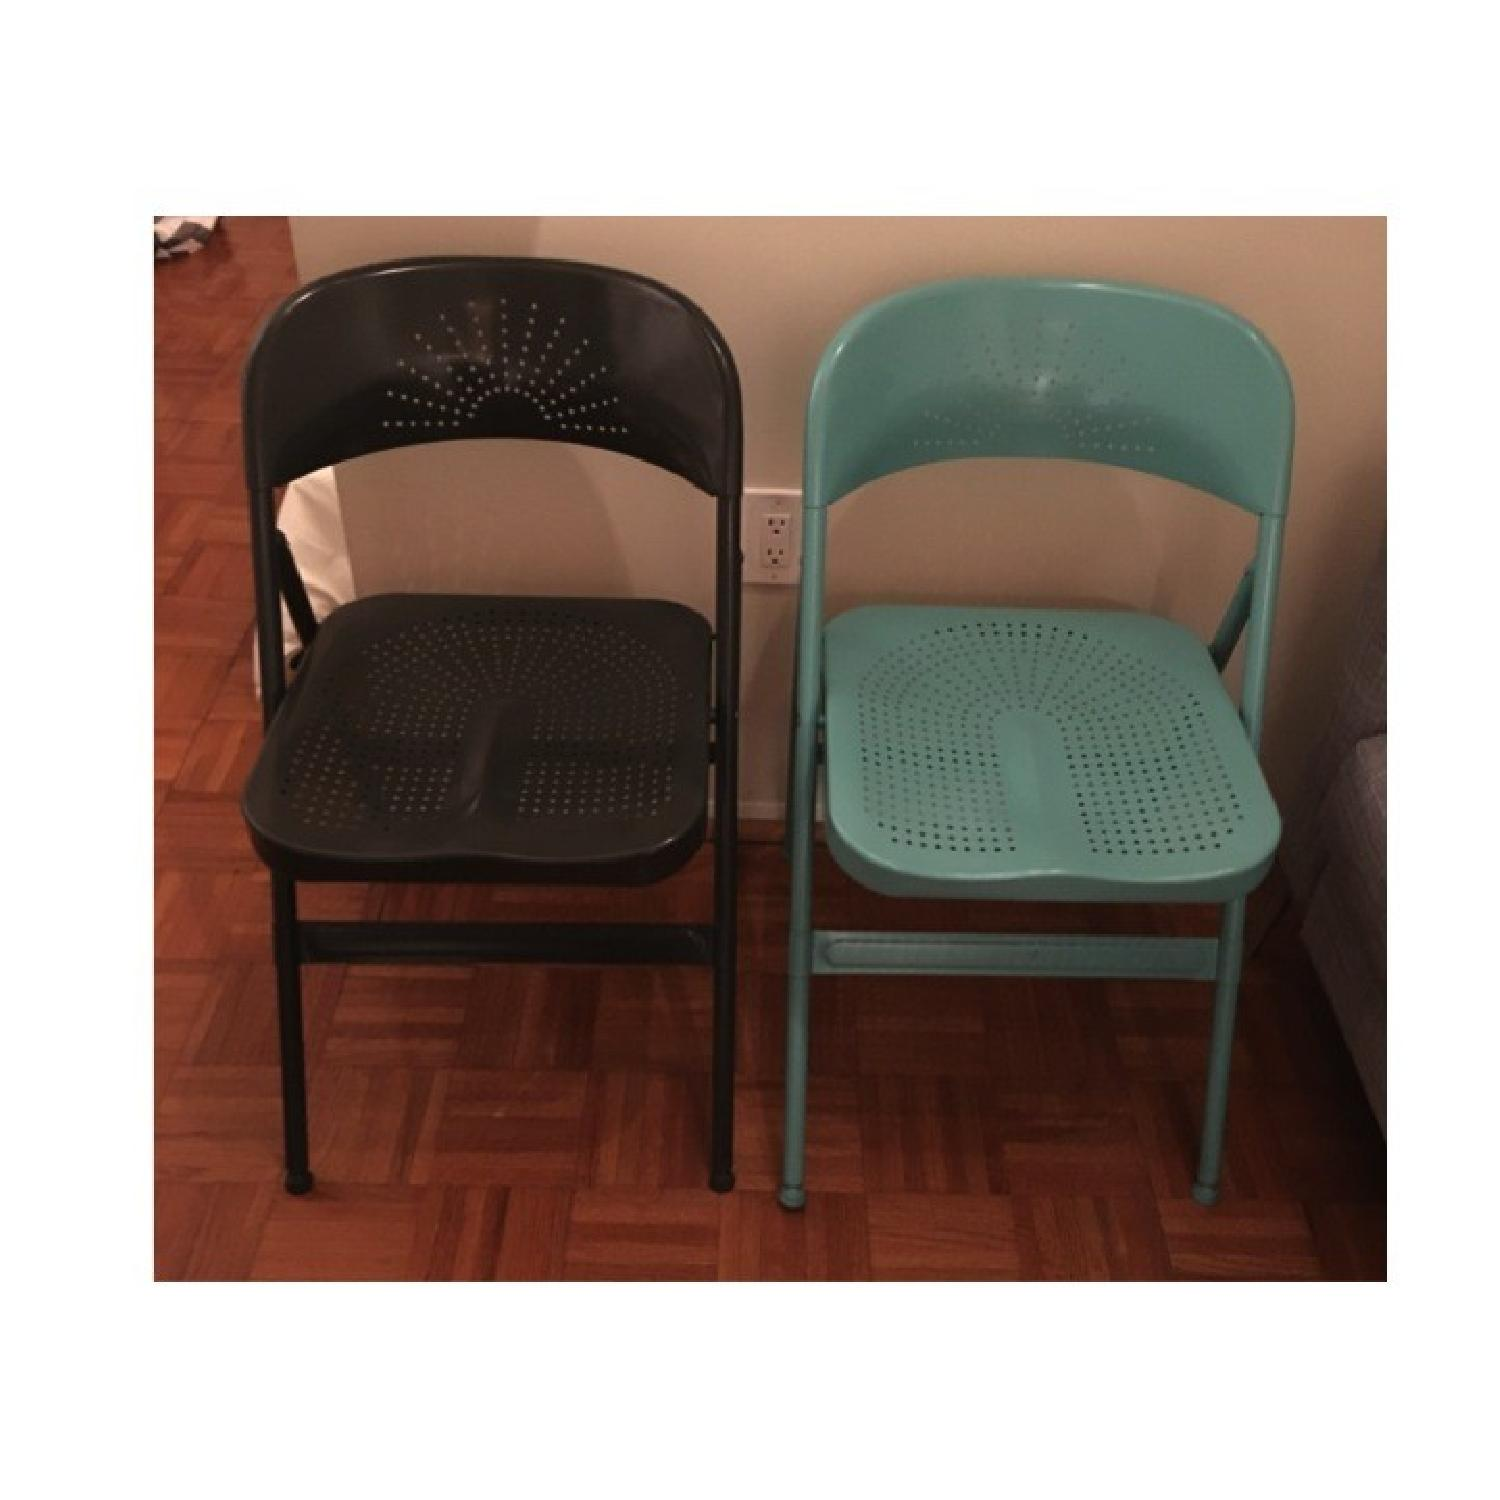 Folding Chair in Dark Grey & Turquoise - image-1